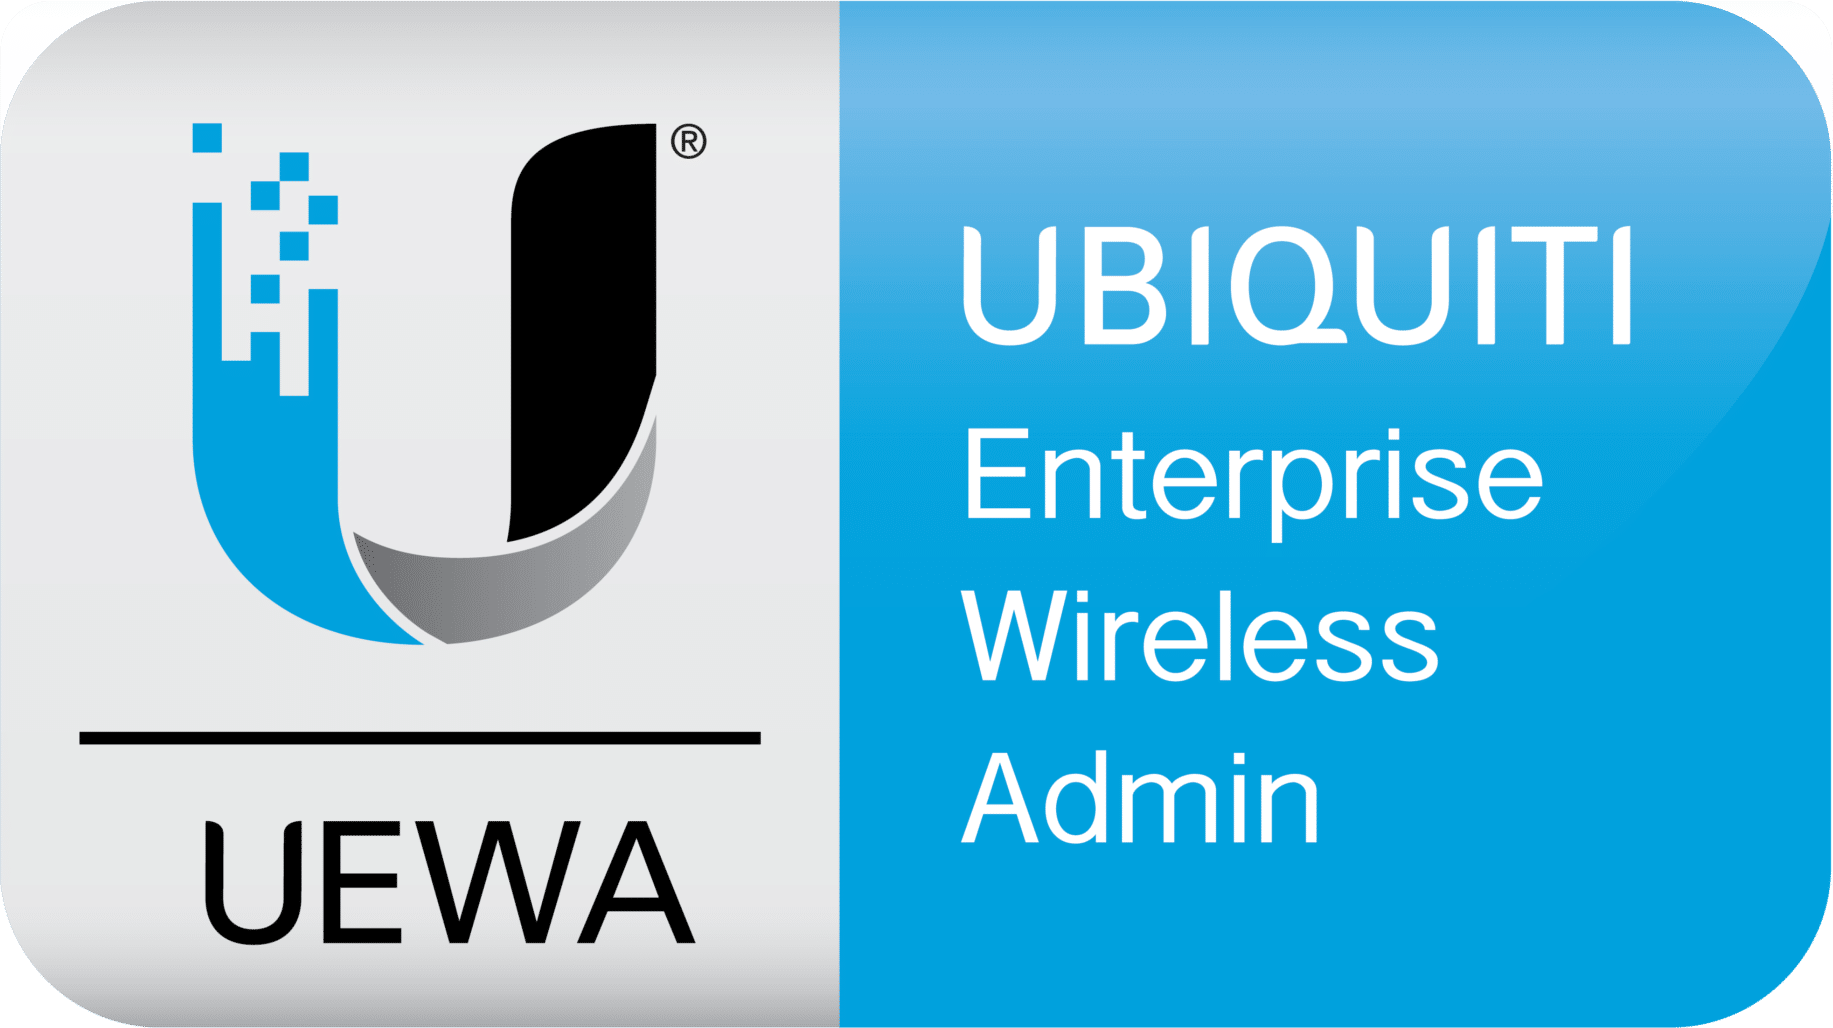 ubiquiti-enterprise-wireless-admin-uewa-irontec